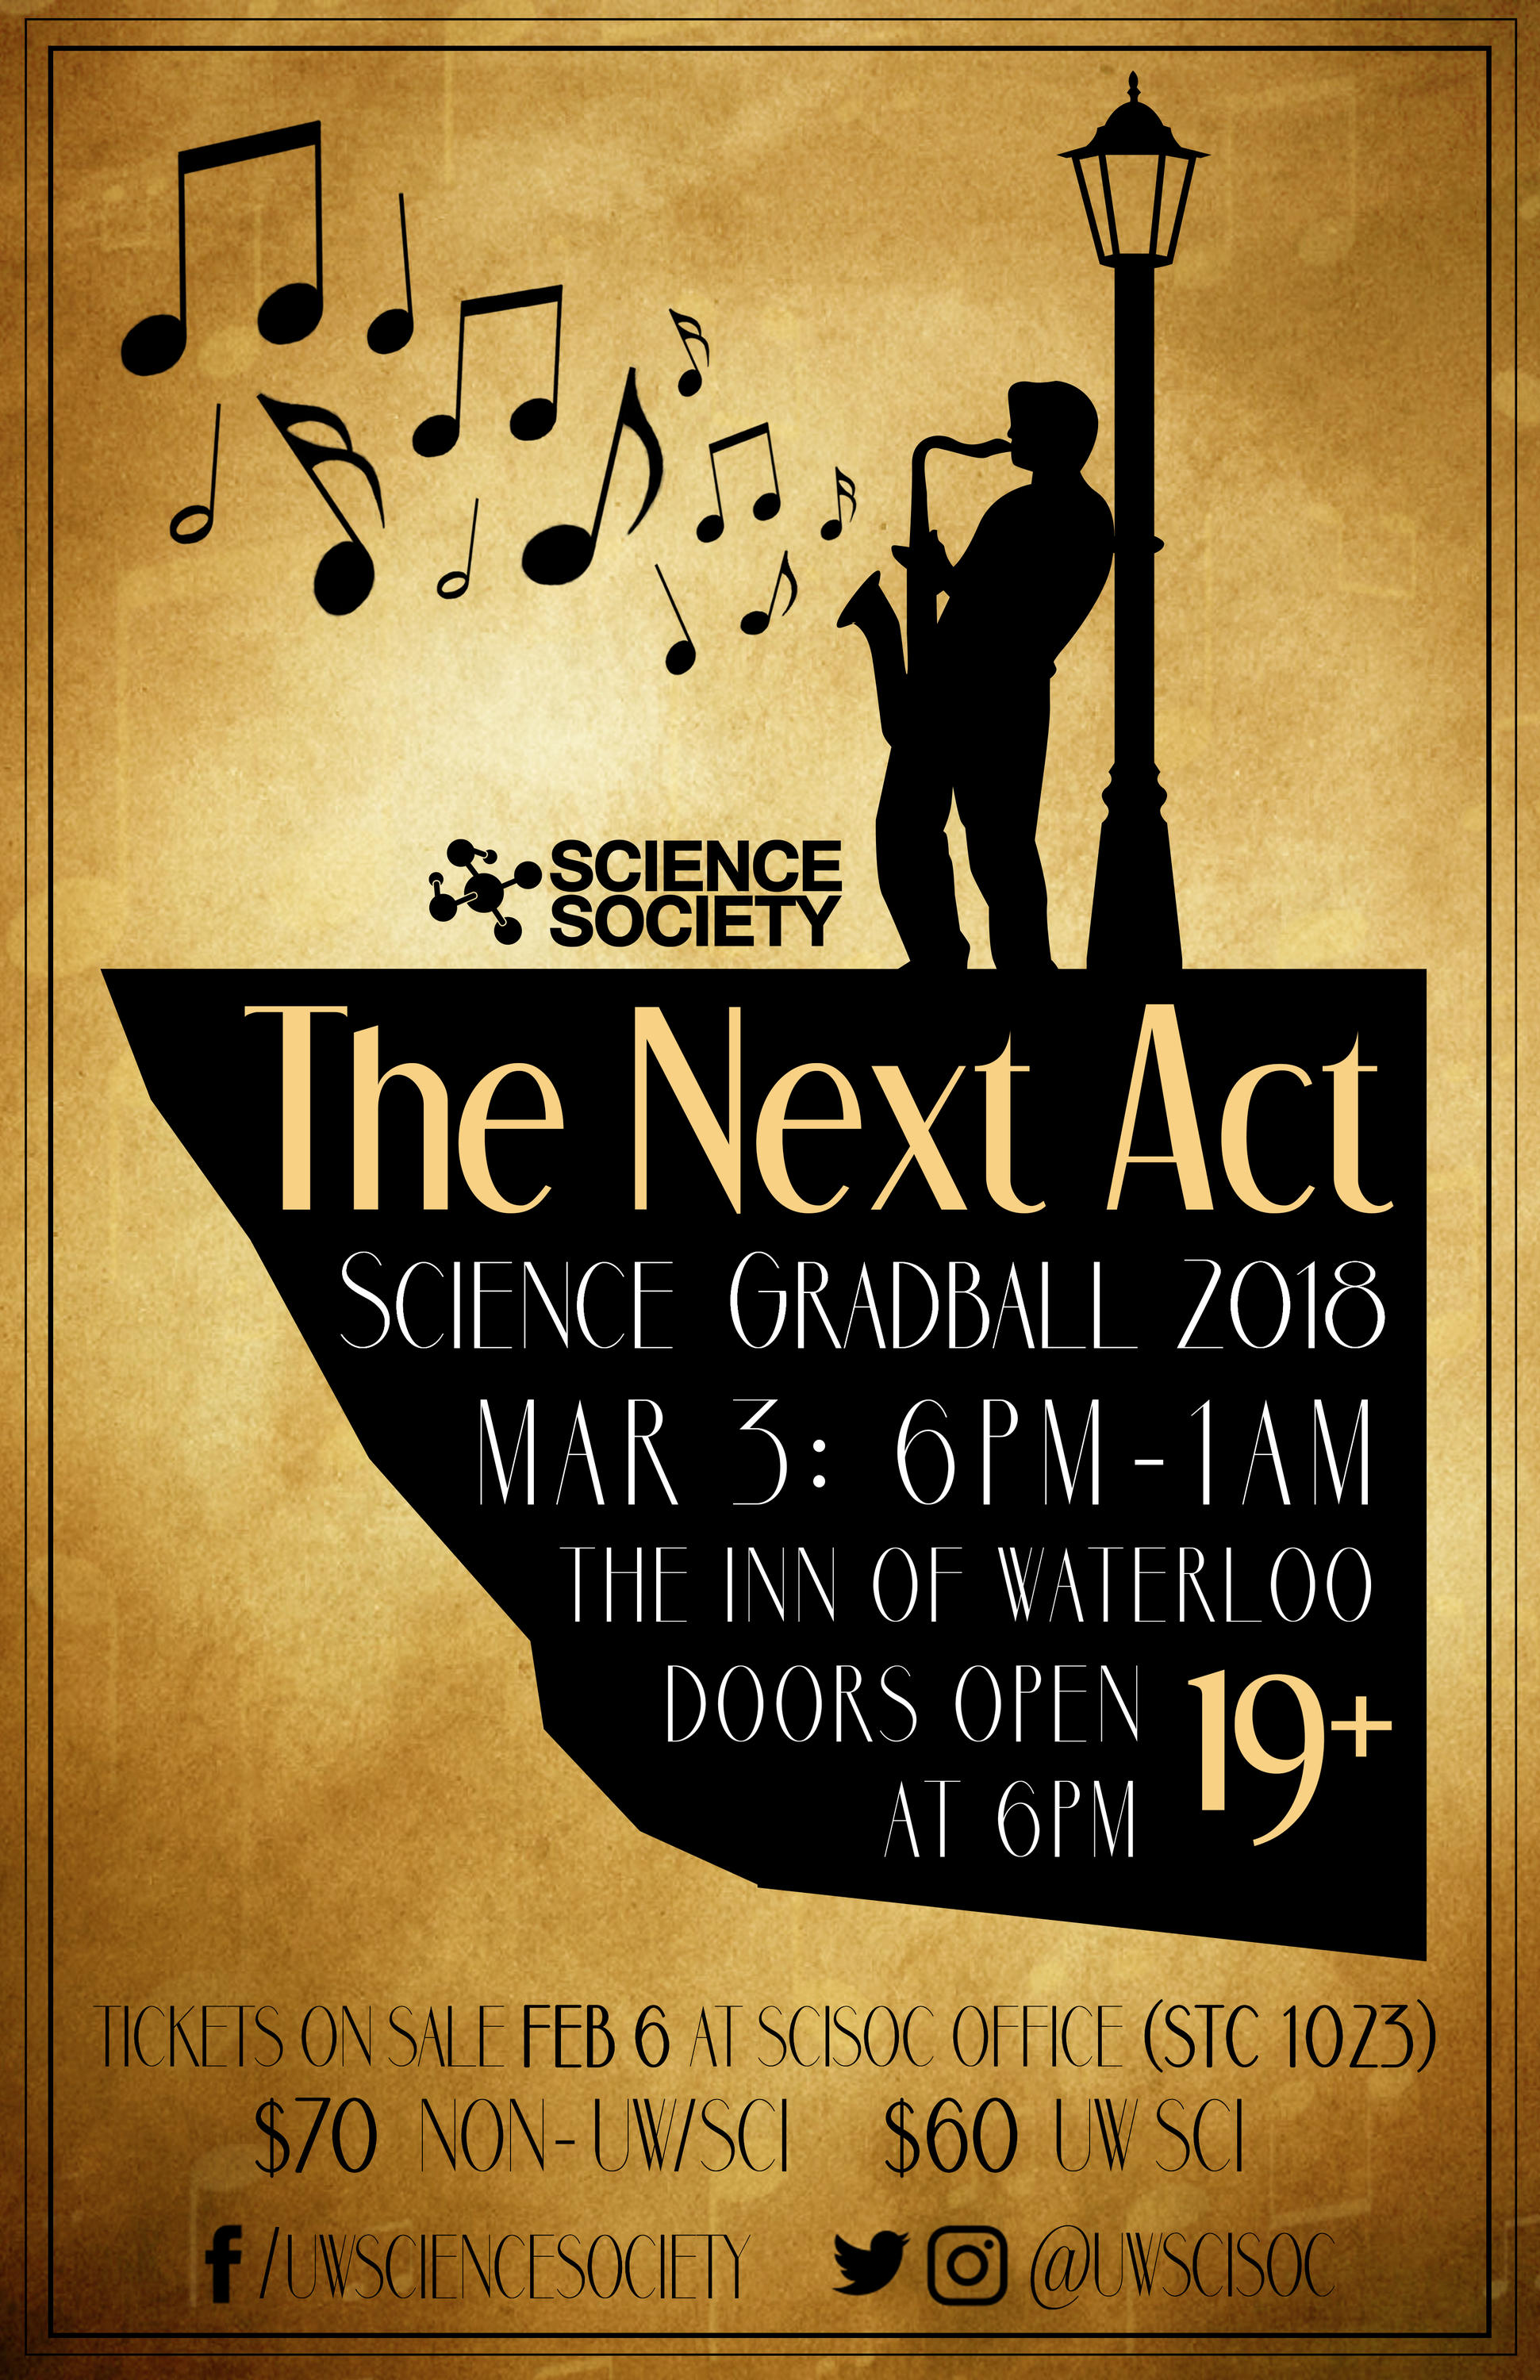 The Next Act Poster